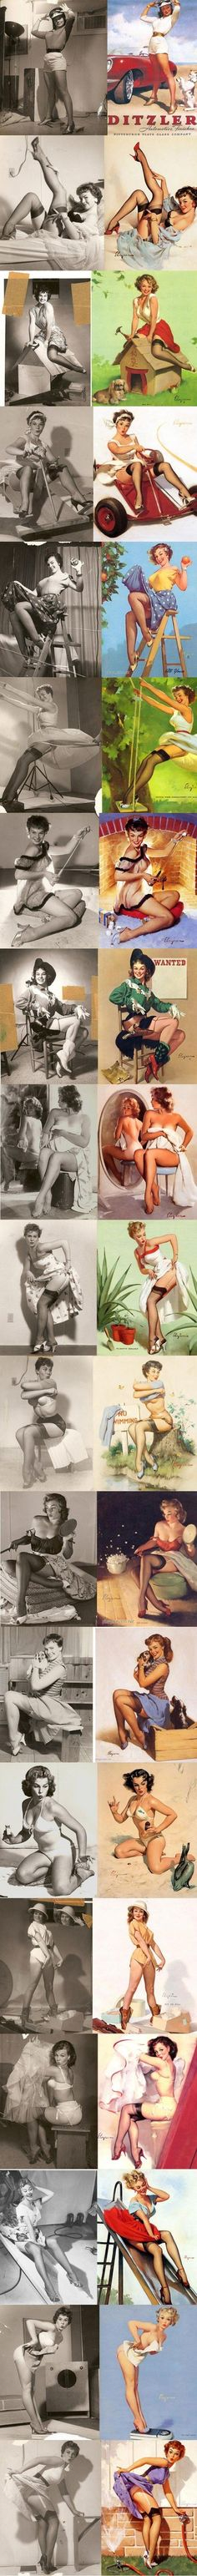 pin-up girls then and now!